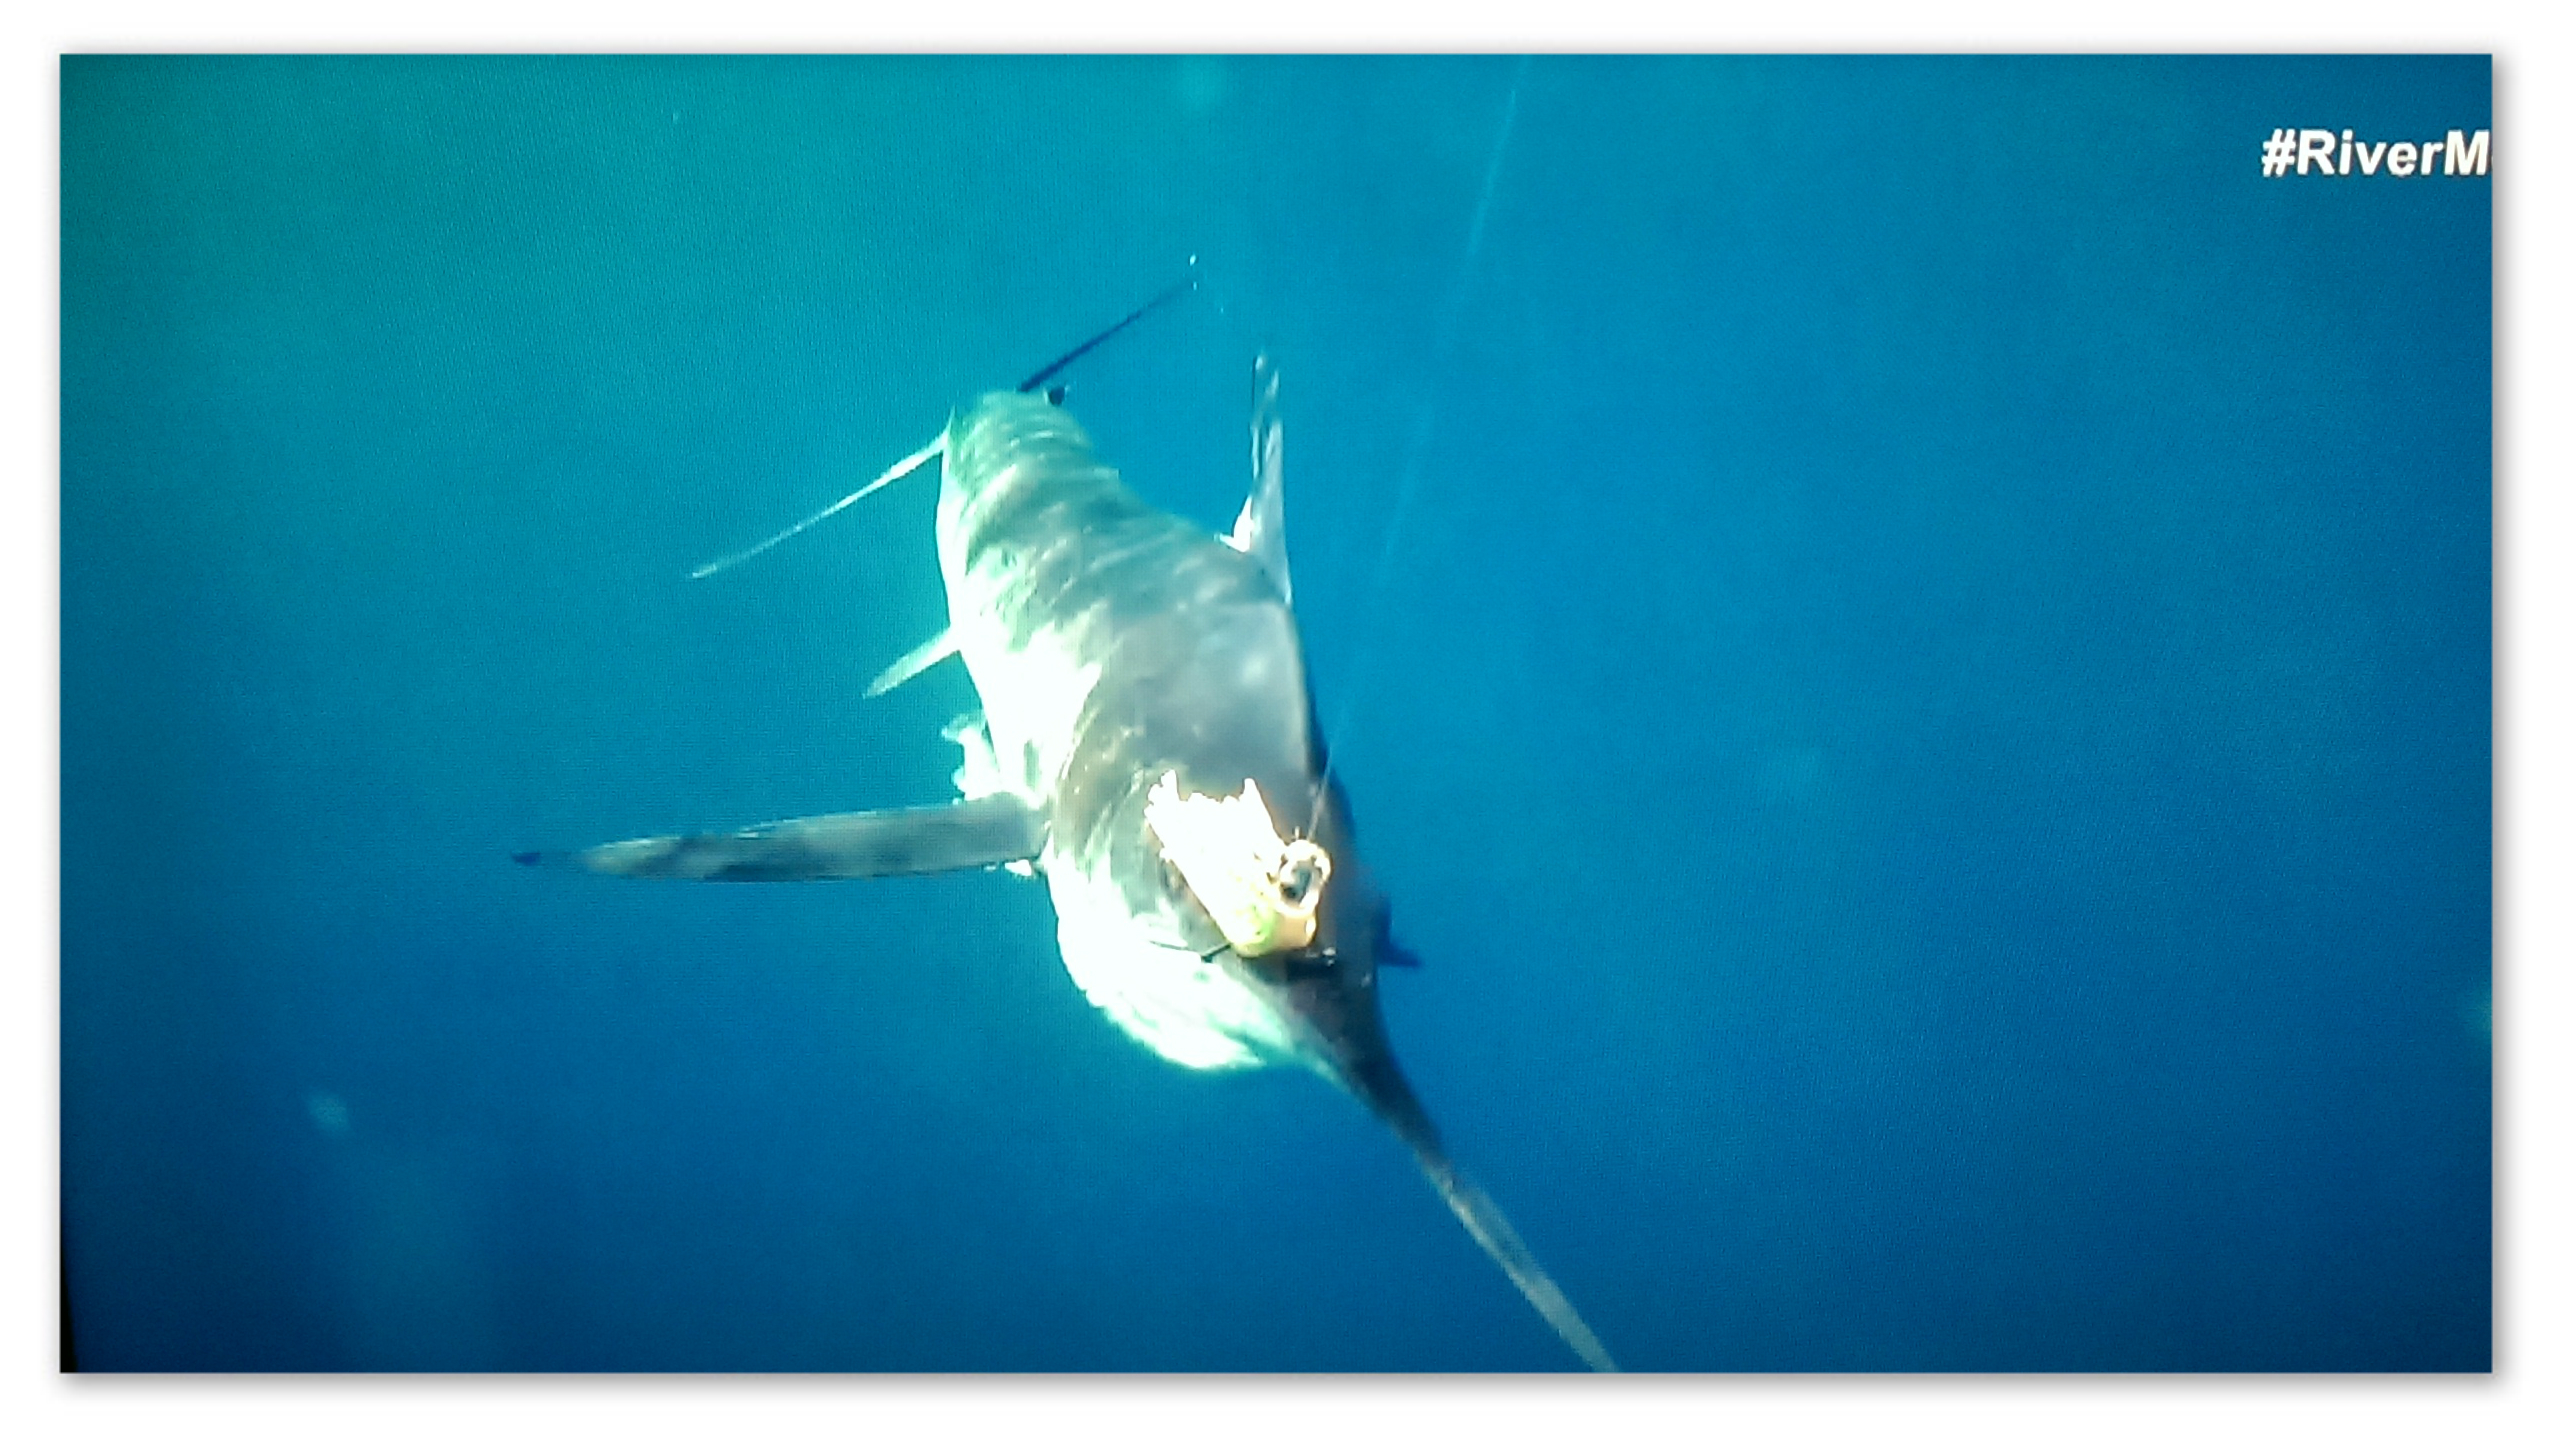 Image of a striped marlin